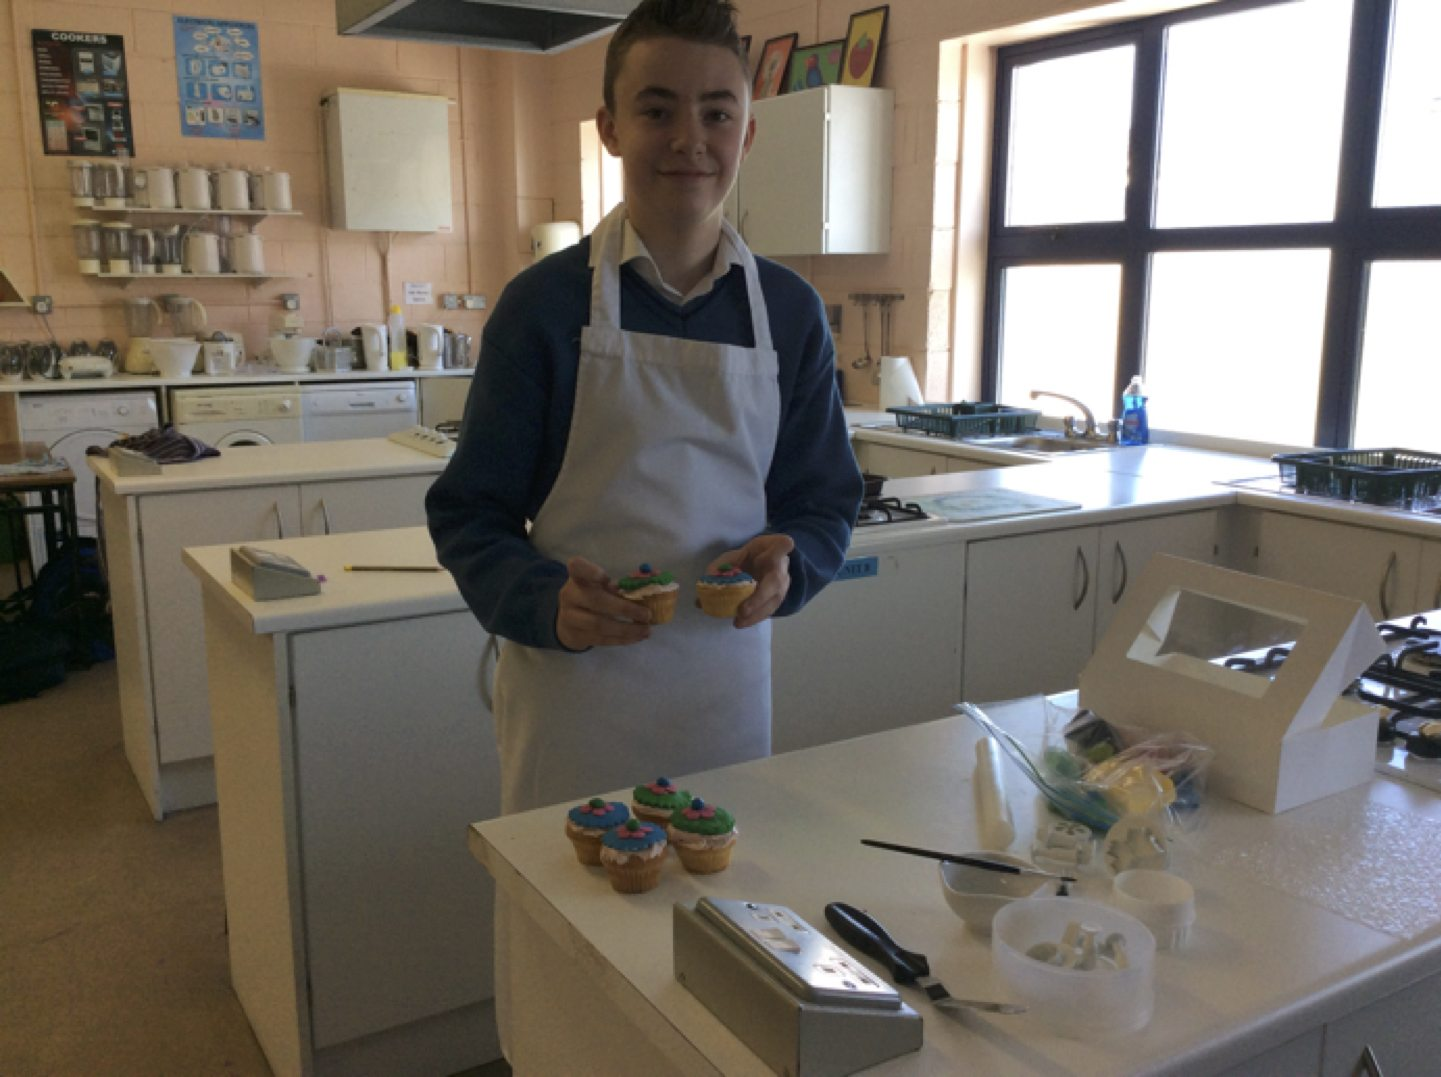 May 2017: Desmond College's Rang Fintan decorated cupcakes as part of the demonstration with Victoria from BakeYouSweet